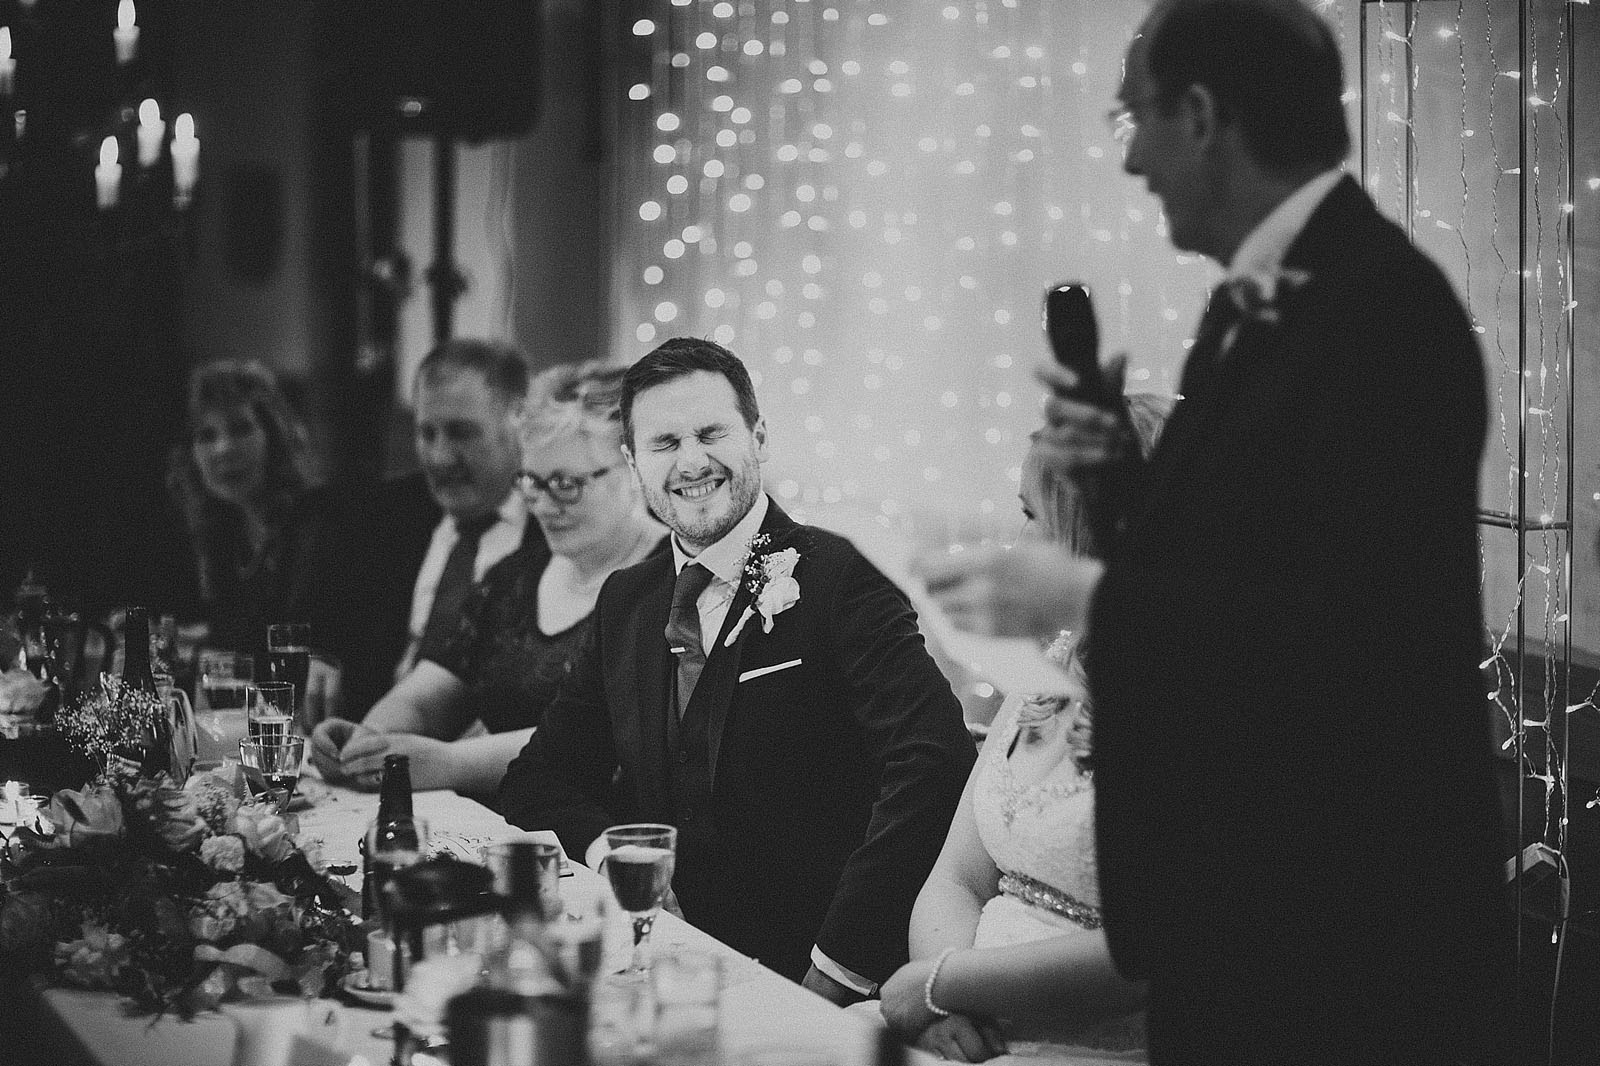 Lawson_Best_Wedding_2015_154